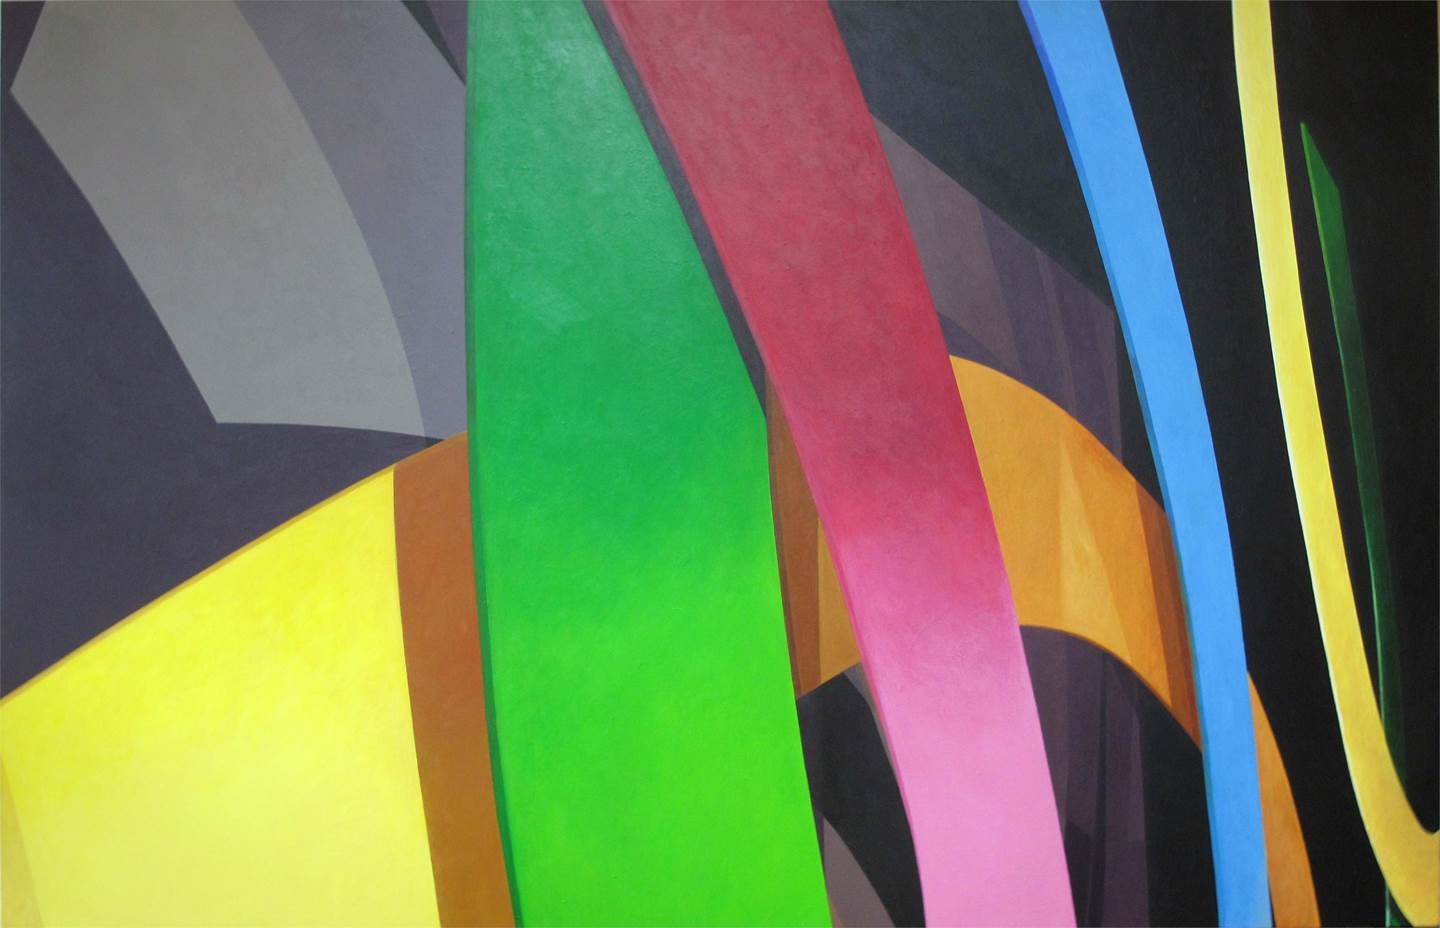 Ábside III, original Geometric Acrylic Painting by Acácio de Carvalho